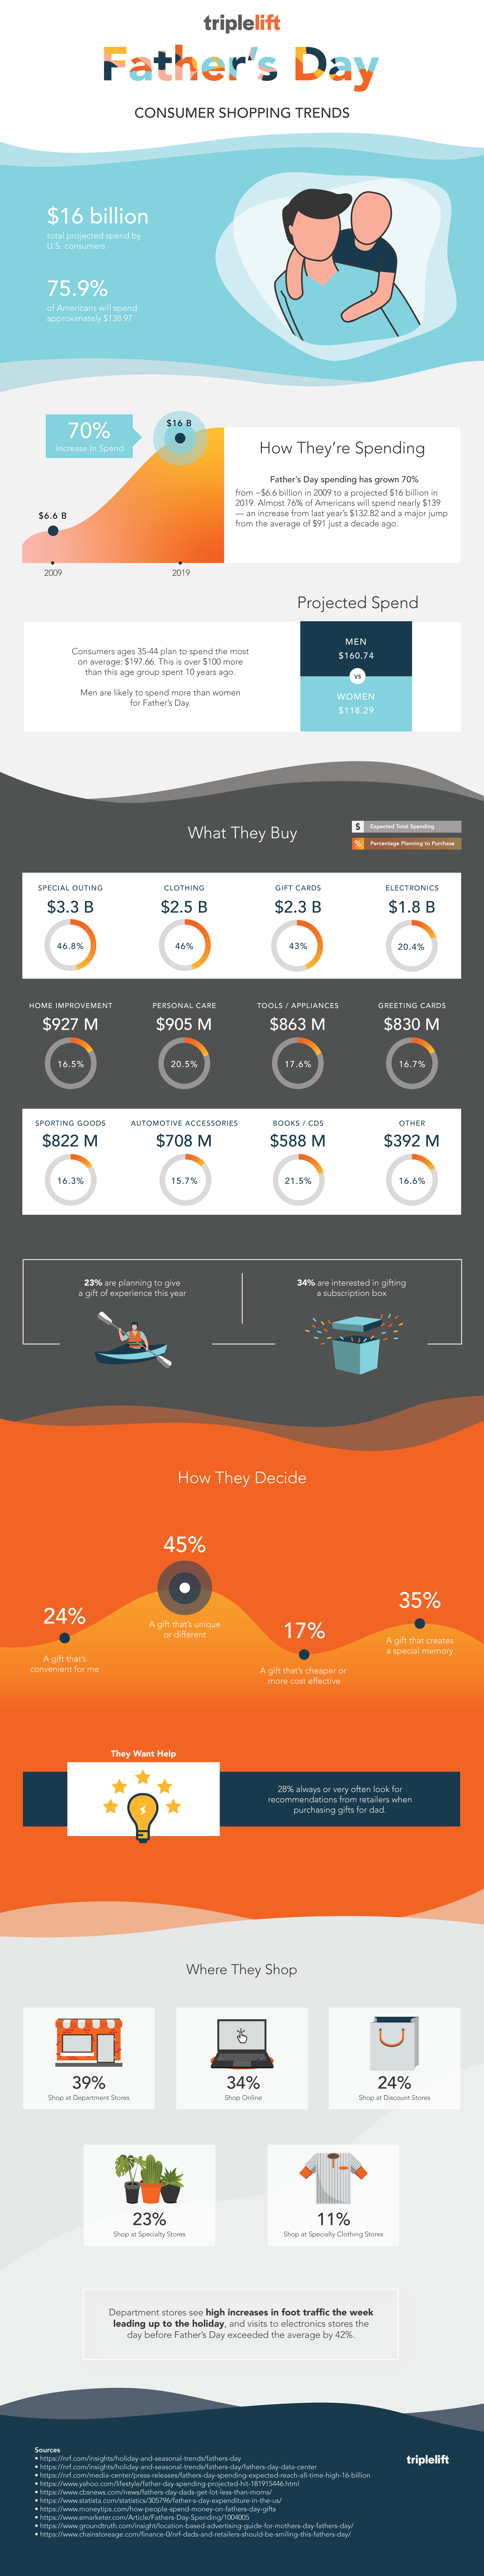 Father's Day Spending Data Infographic